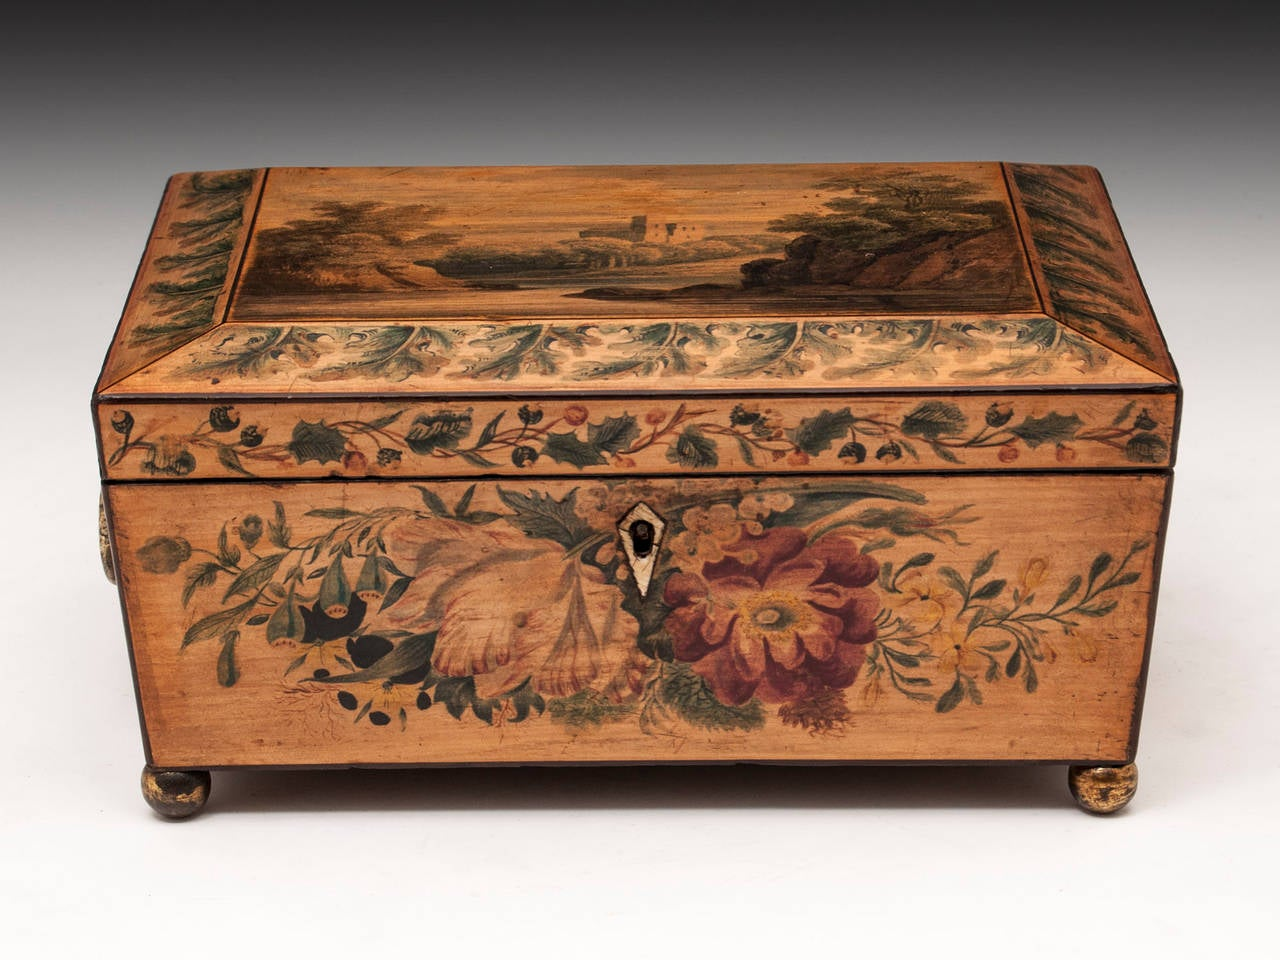 Painted sewing box, all applied on white wood sycamore box with a quite beautiful shape with floral patterns on all sides and a scene with a castle view on the top. 